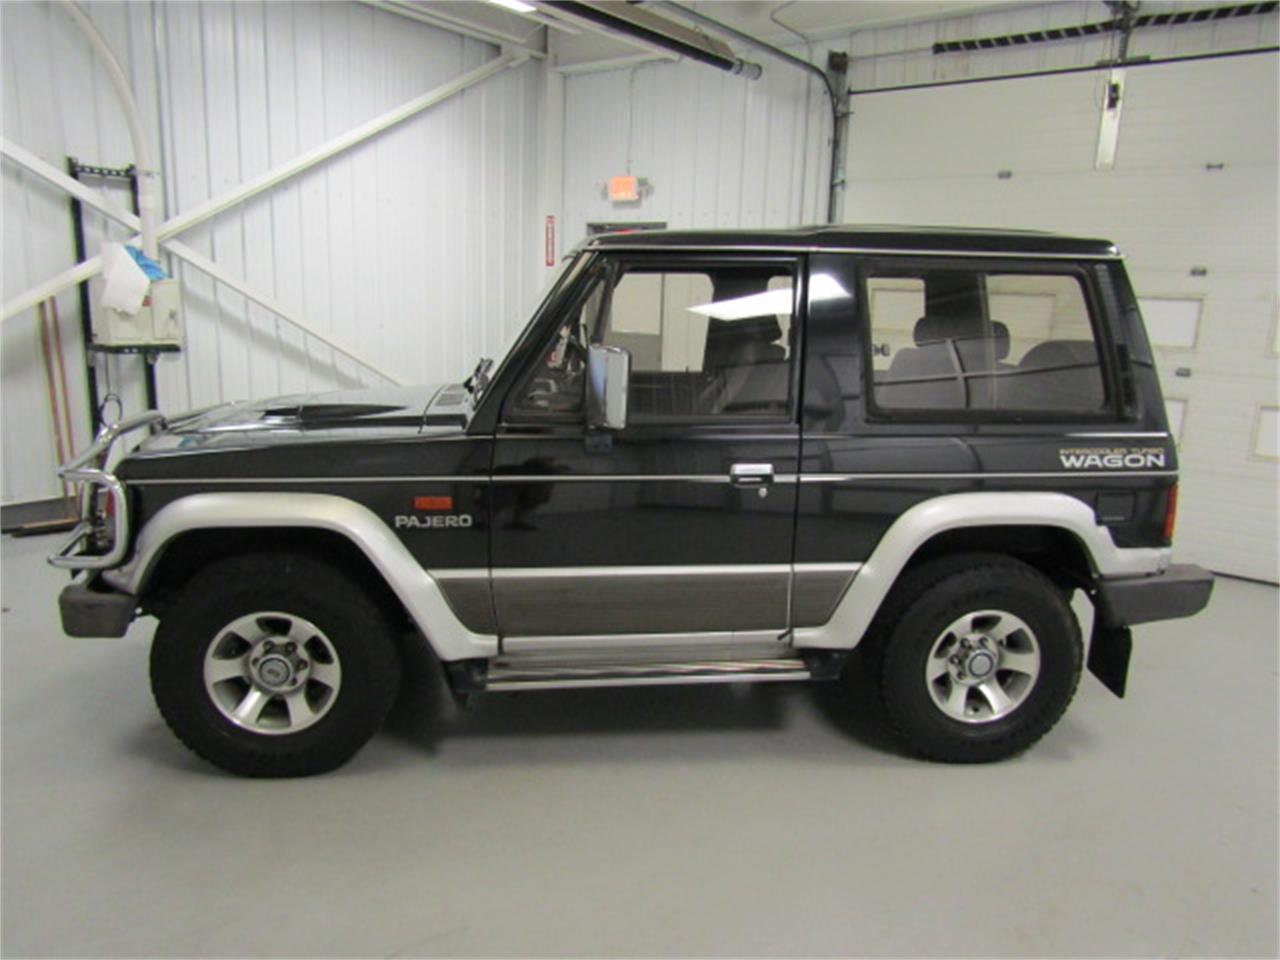 Large Picture of 1990 Pajero - $7,999.00 Offered by Duncan Imports & Classic Cars - KXIX